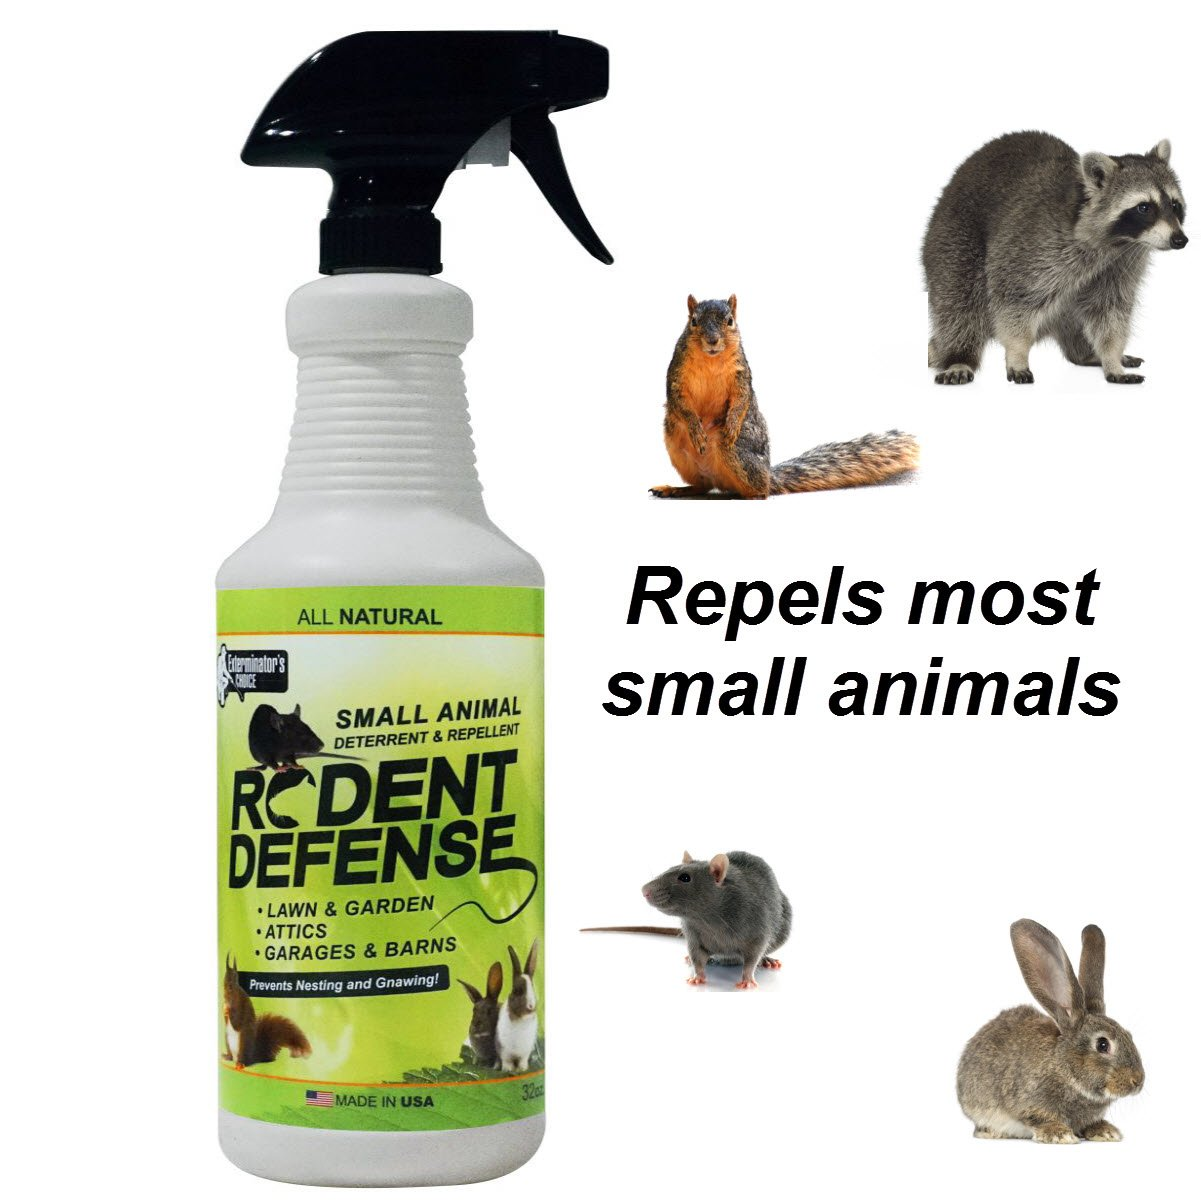 Exterminators Choice Vehicle Protection Mice & Rodent Repellent Vehicle  Wiring|Protects Engine Wiring|Prevents Nesting/Chewing-All Natural-for